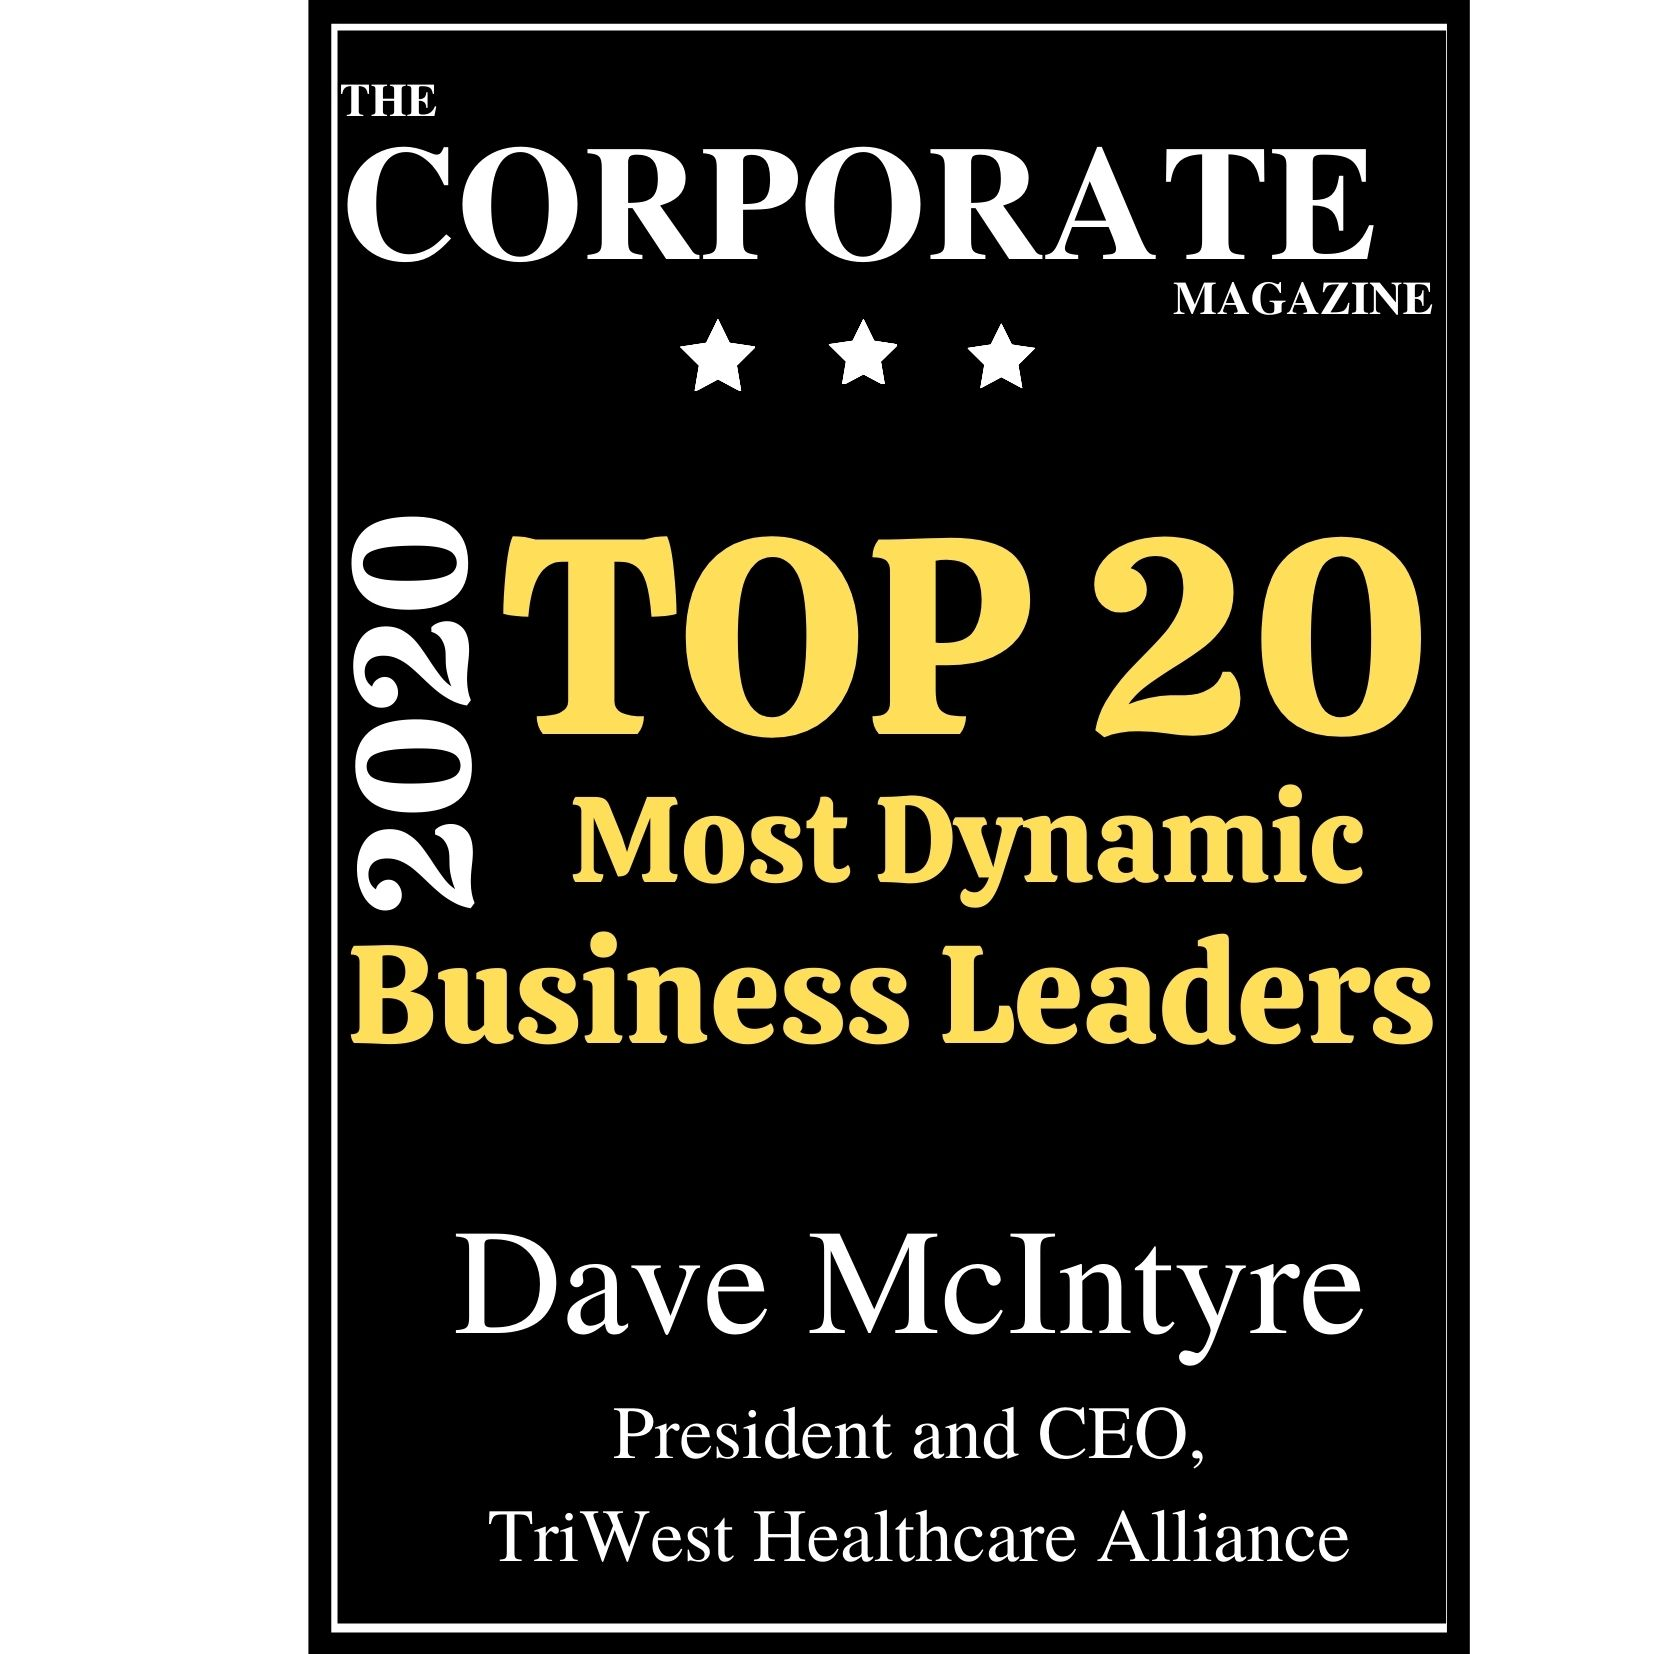 Dave McIntyre Business and Healthcare leader